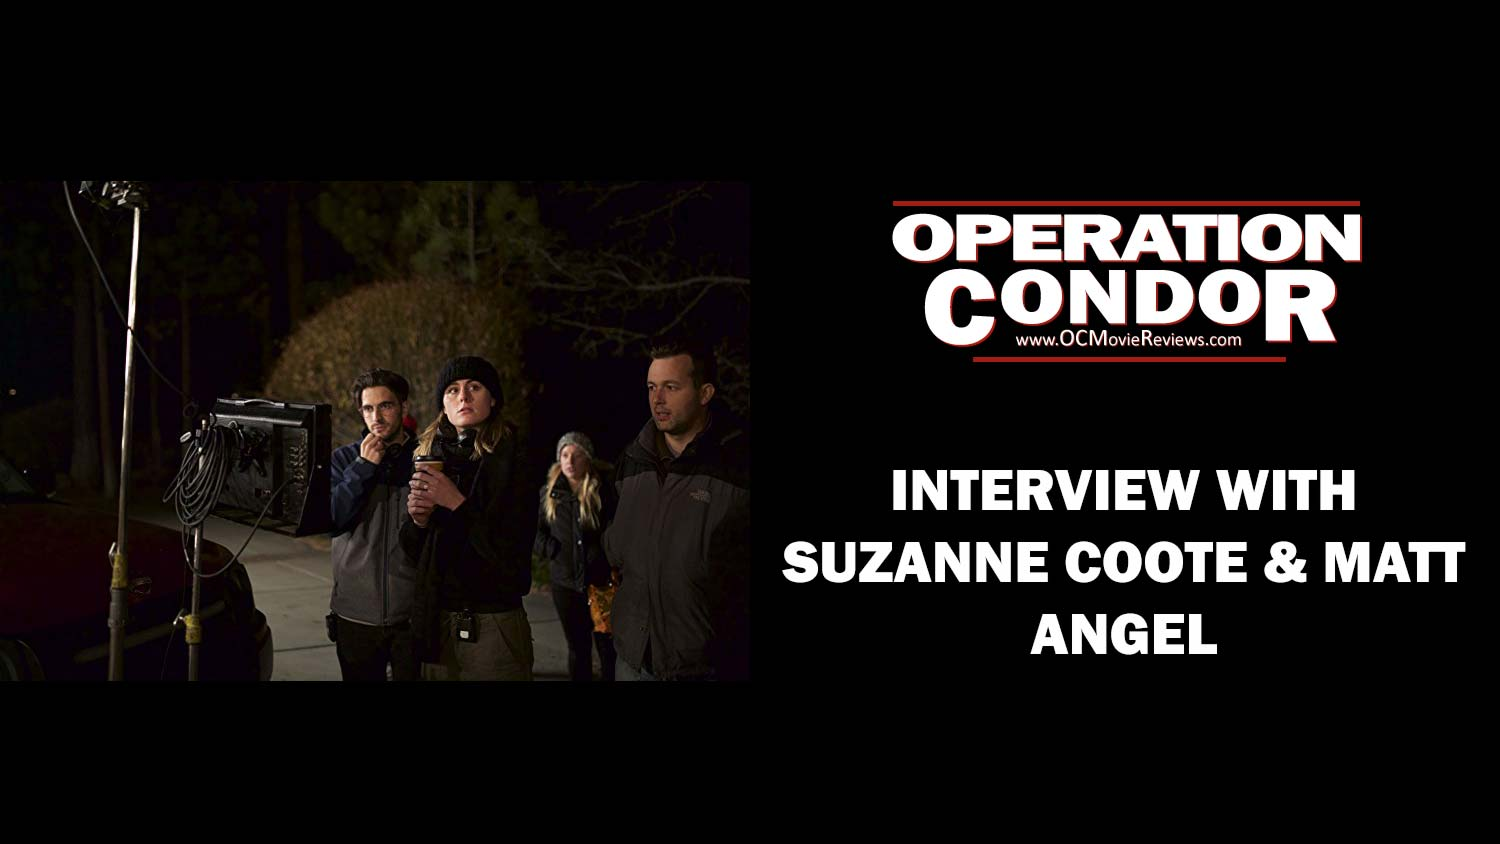 Suzanne Coote & Matt Angel Talk The Open House, Death Threats & What's Next - OC Movie Reviews - Movie Reviews, Movie News, Documentary Reviews, Short Films, Short Film Reviews, Trailers, Movie Trailers, Interviews, film reviews, film news, hollywood, indie films, documentaries